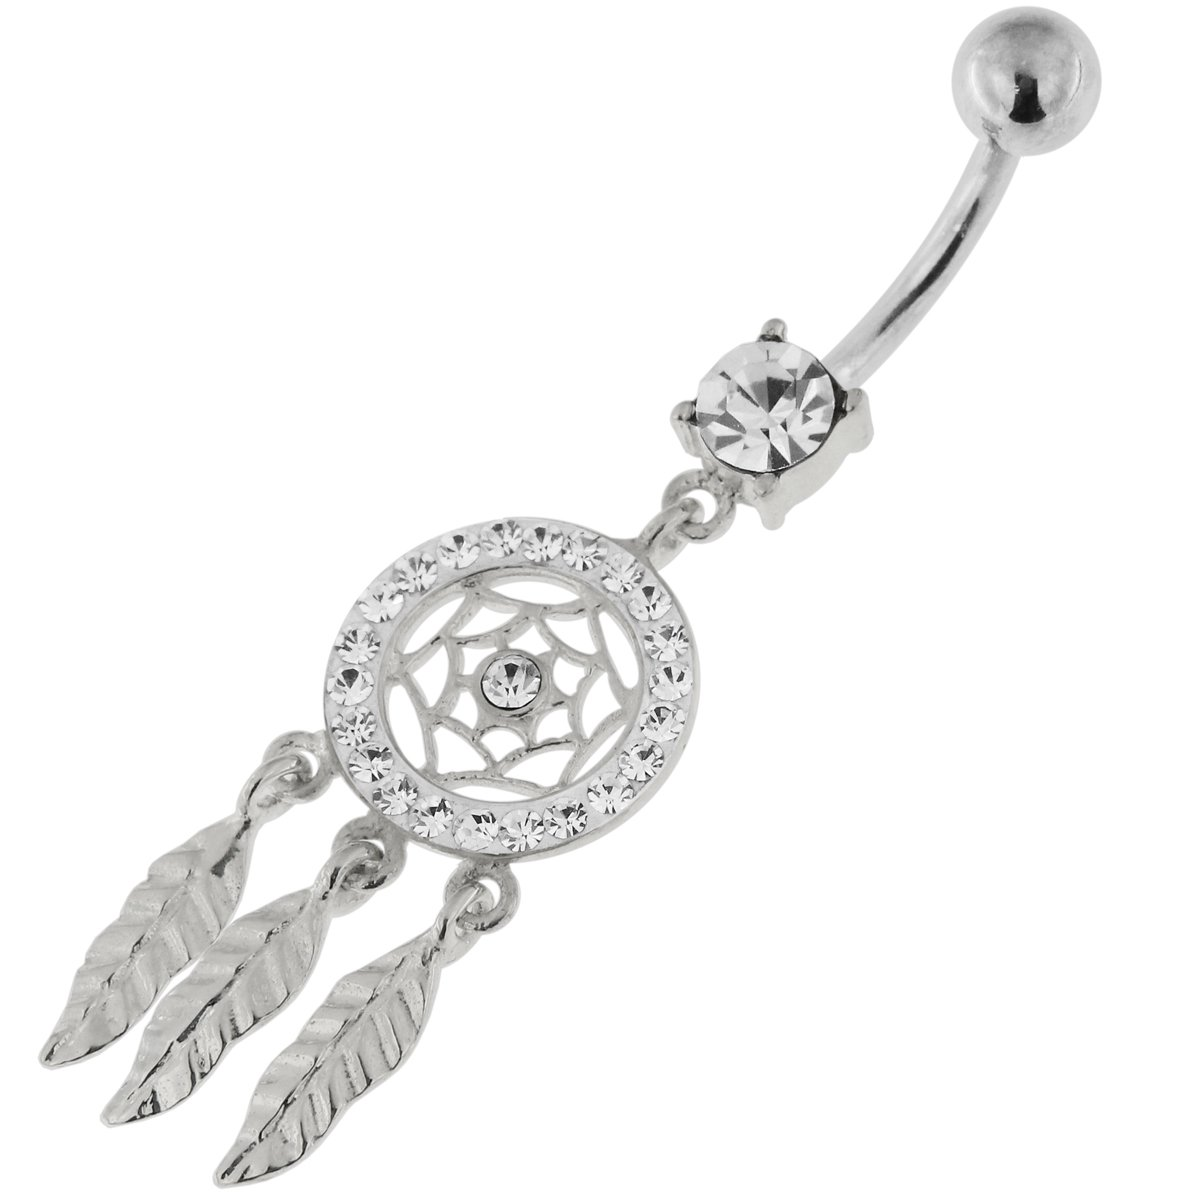 Clear Multi Crystal Stone Mini Dream Catcher 925 Sterling Silver Belly Button Piercing Ring Jewelry